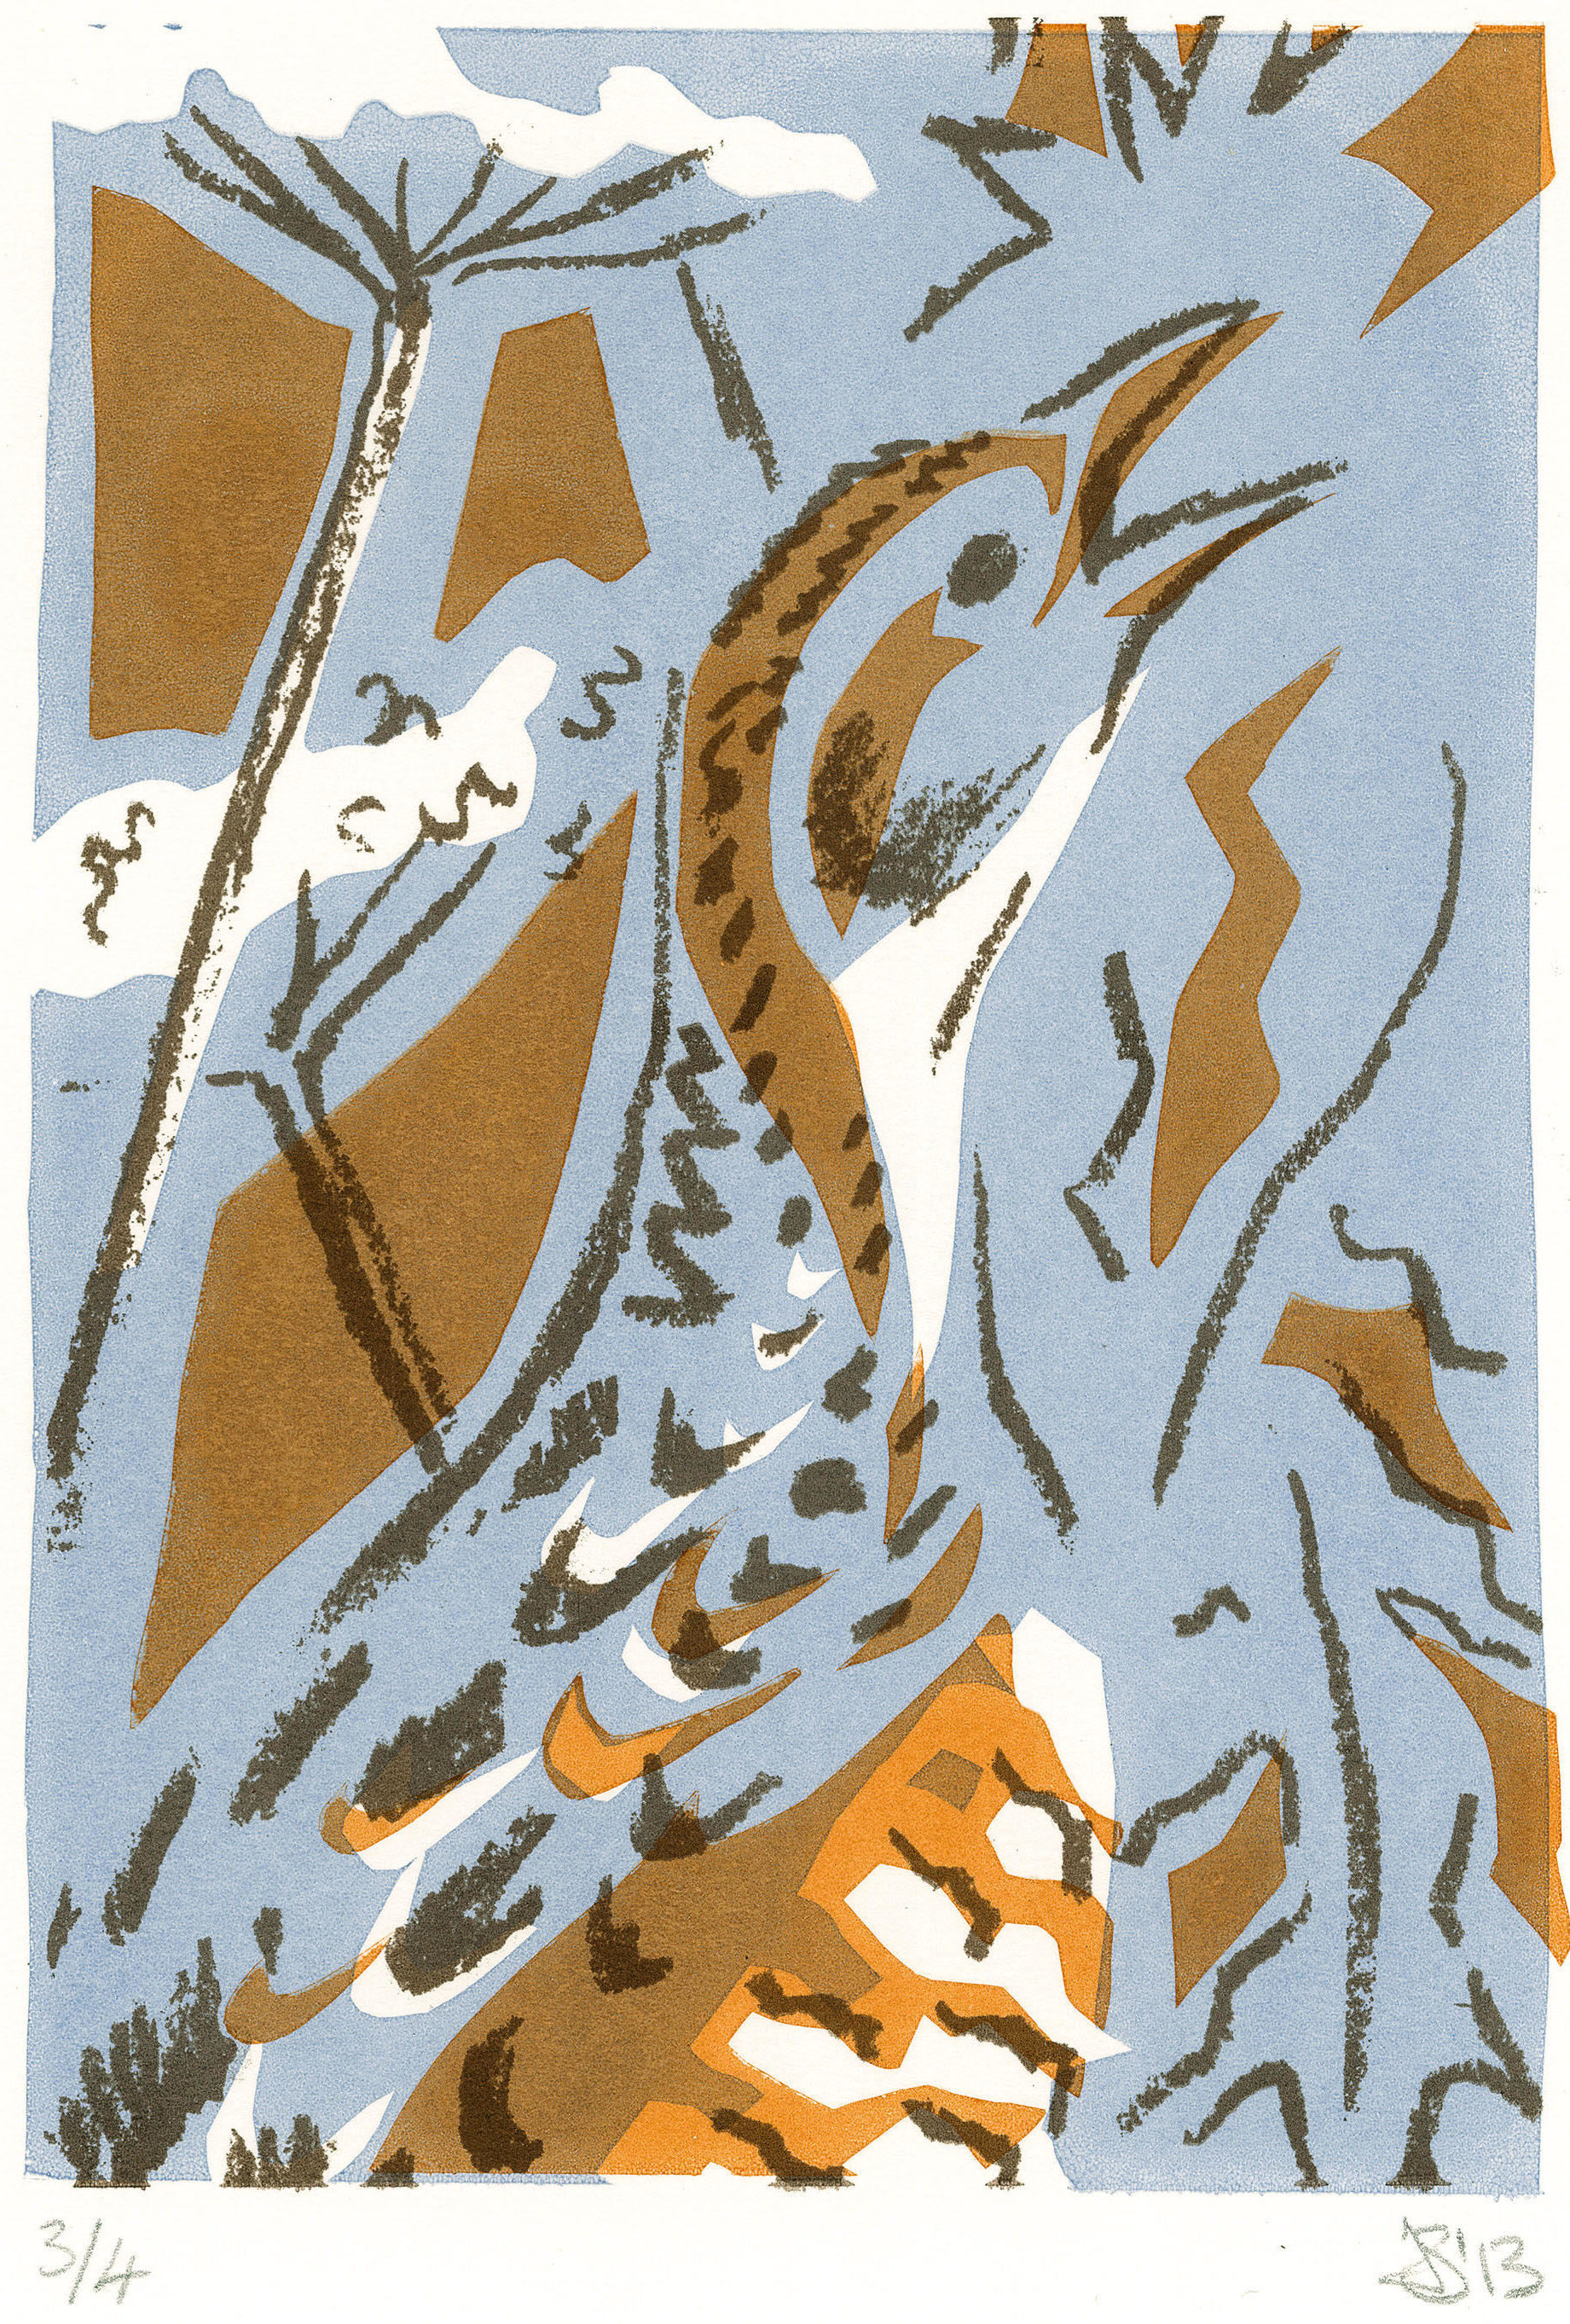 Corncrake, screen print,